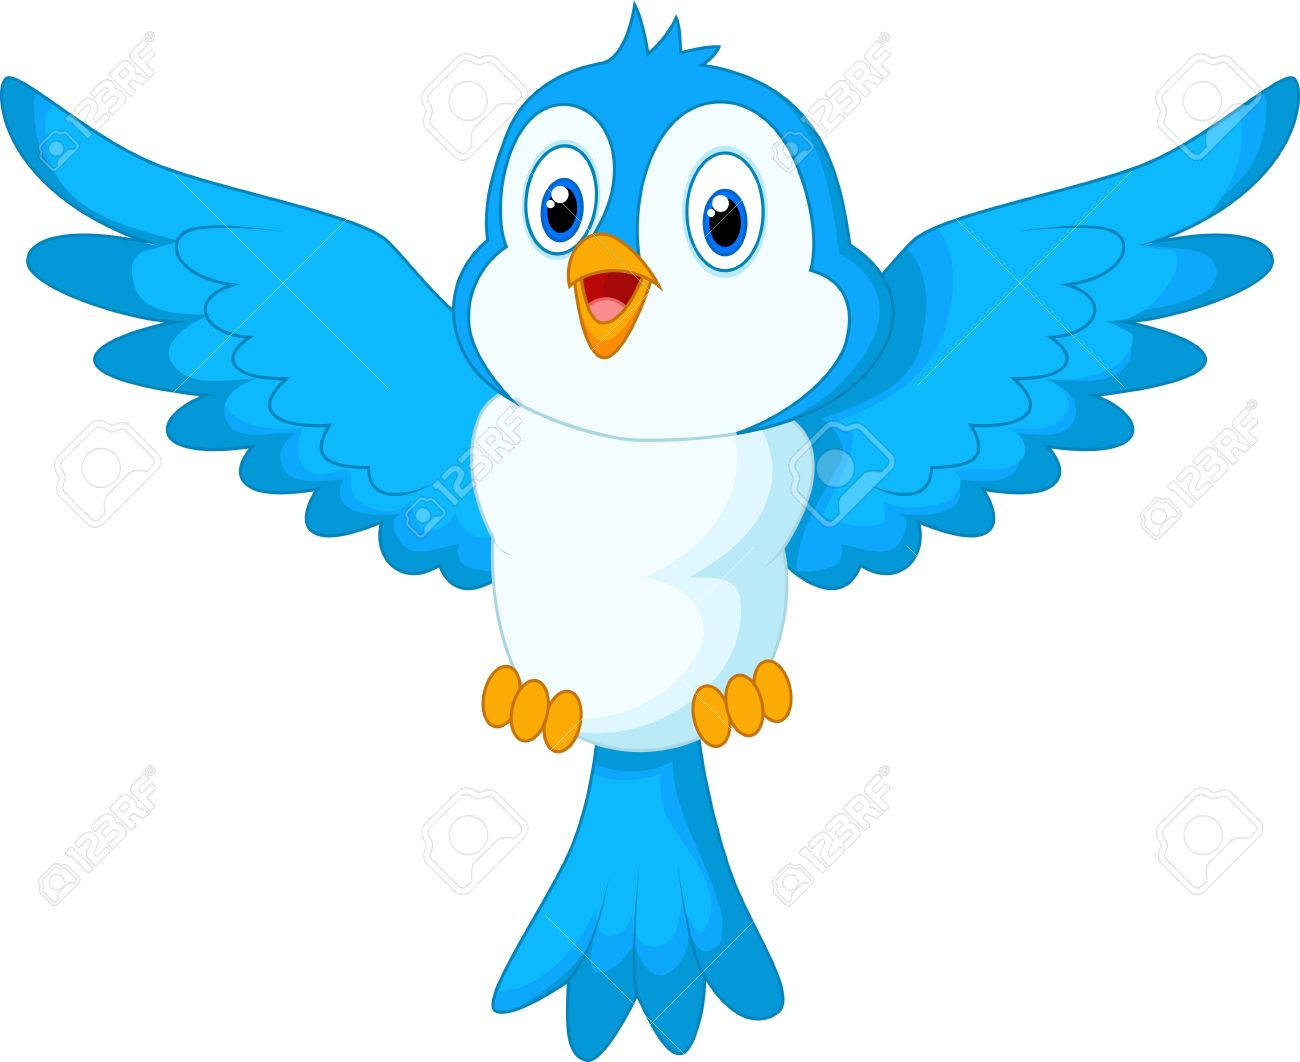 cute cartoon blue bird flying royalty free cliparts vectors and rh 123rf com flying bird clipart images flying bird clipart black